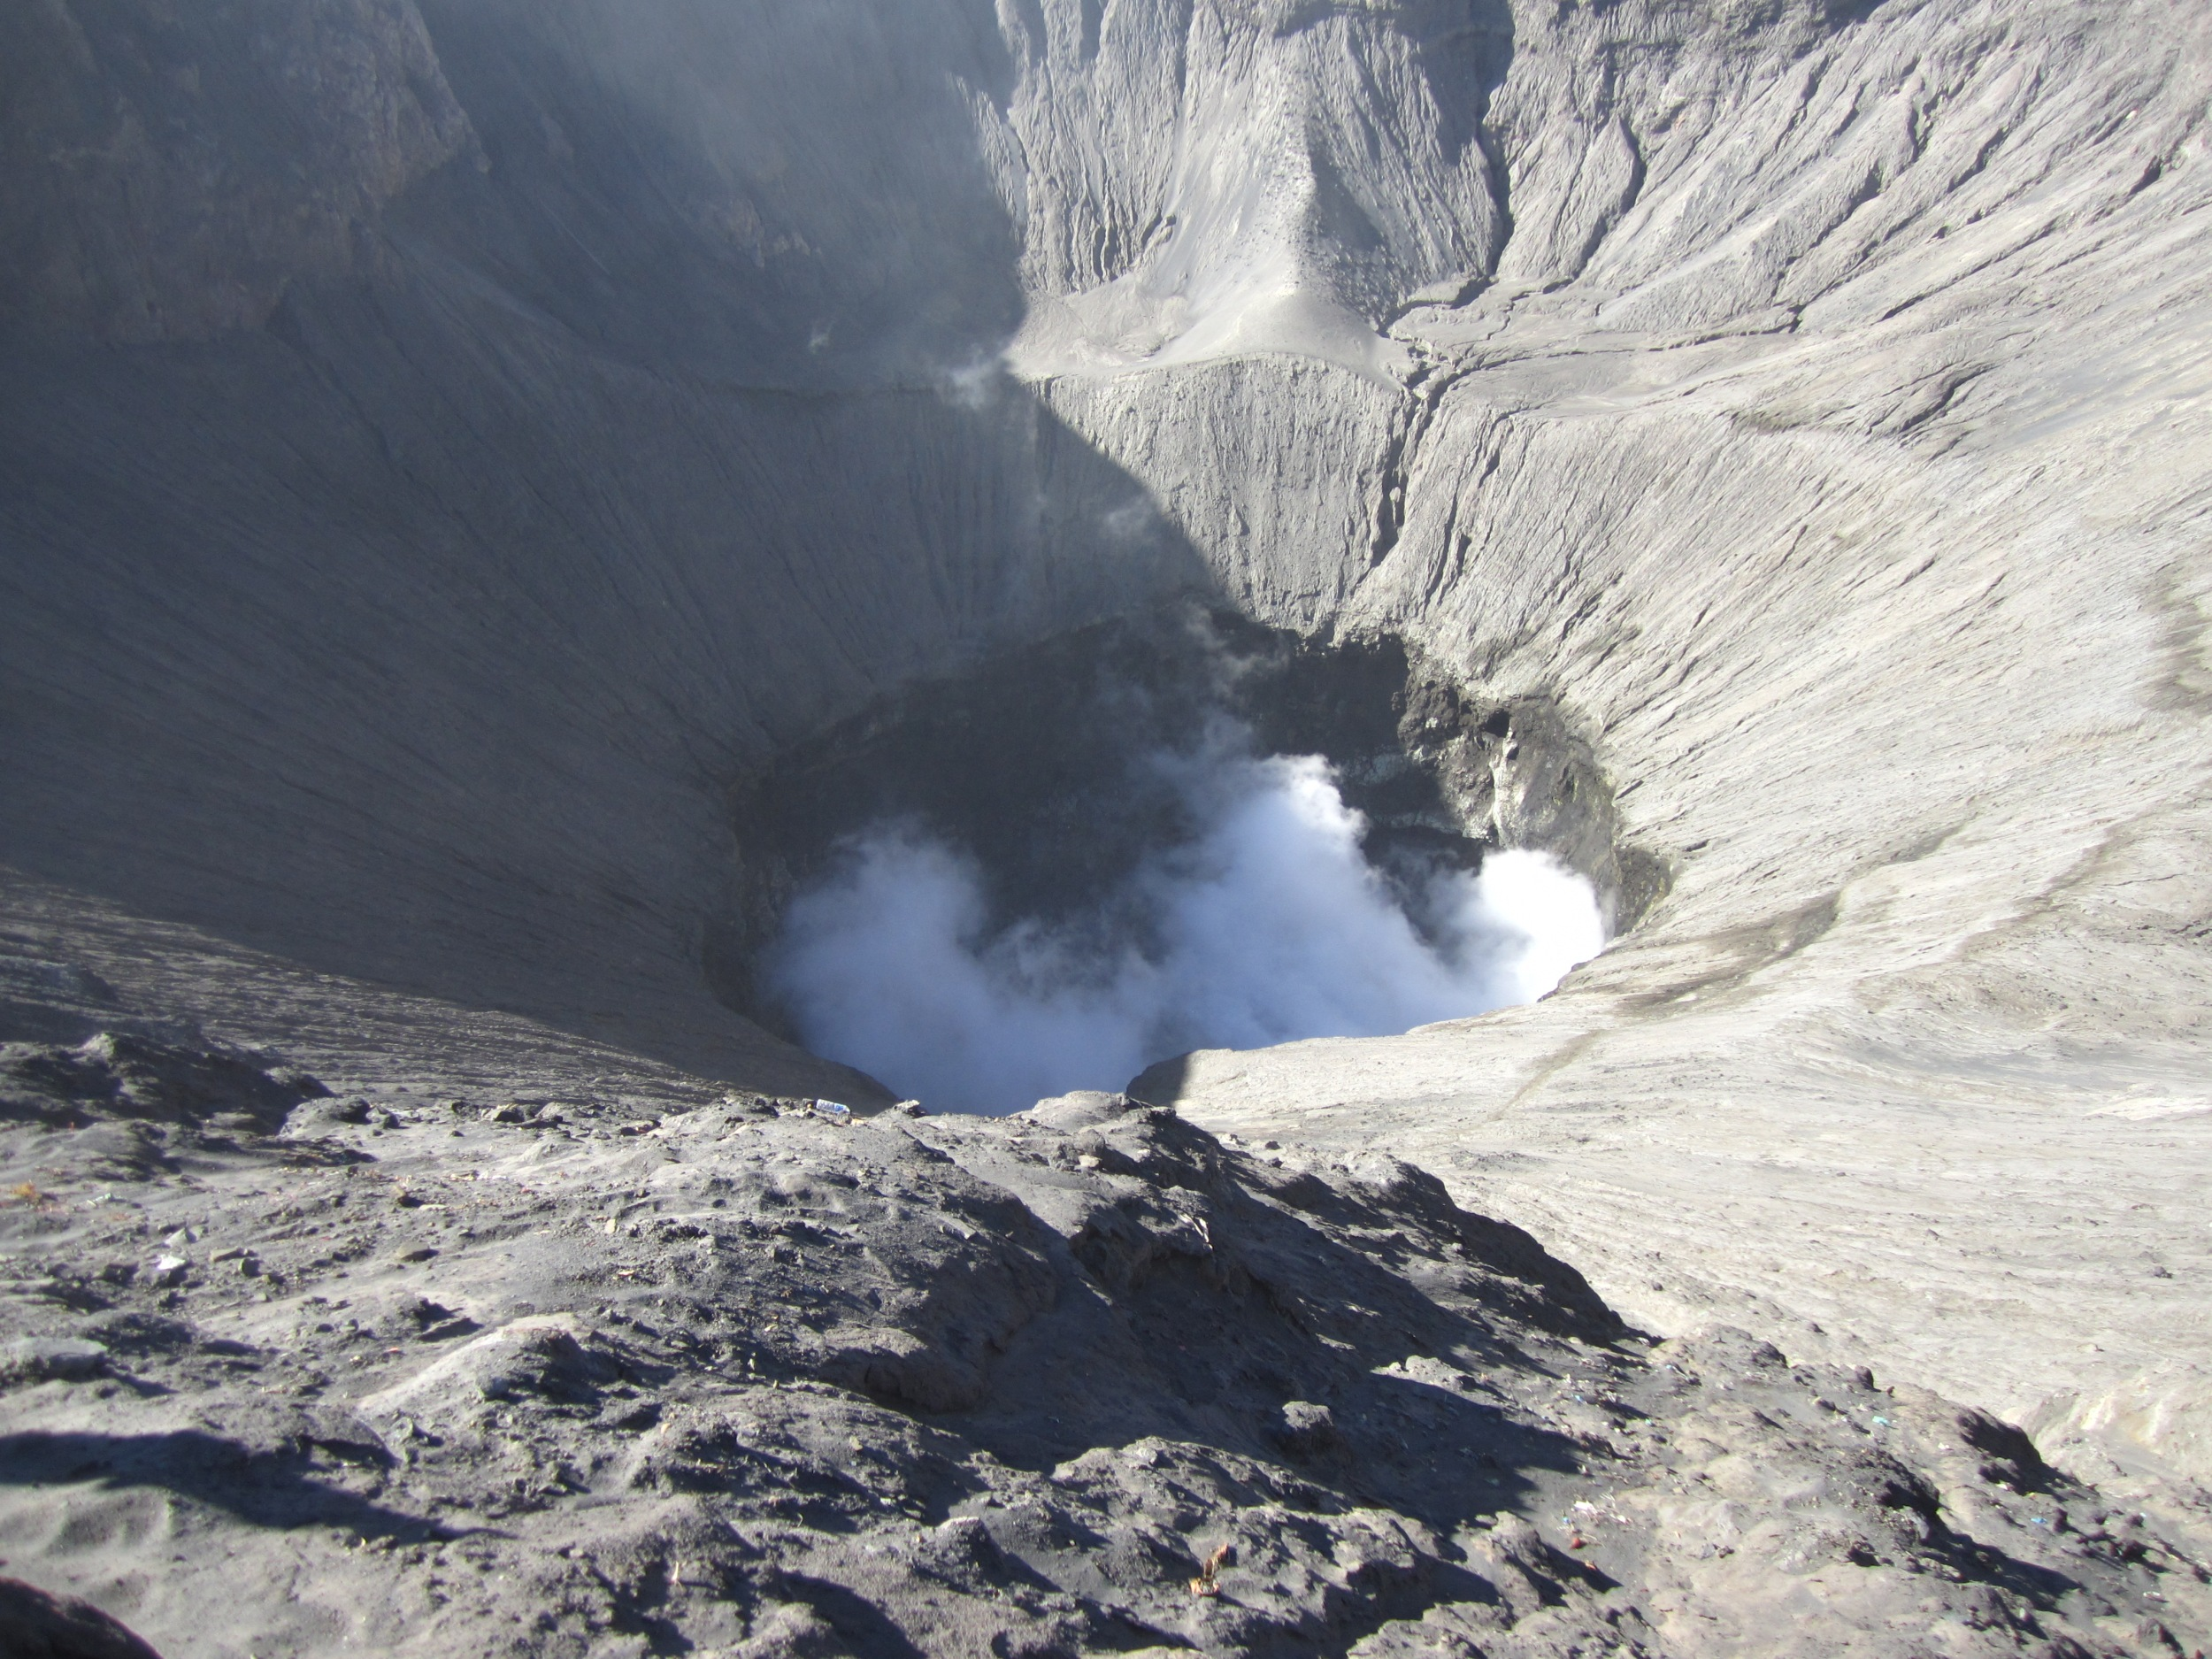 Bromo's massive crater spewing white sulphurous smoke